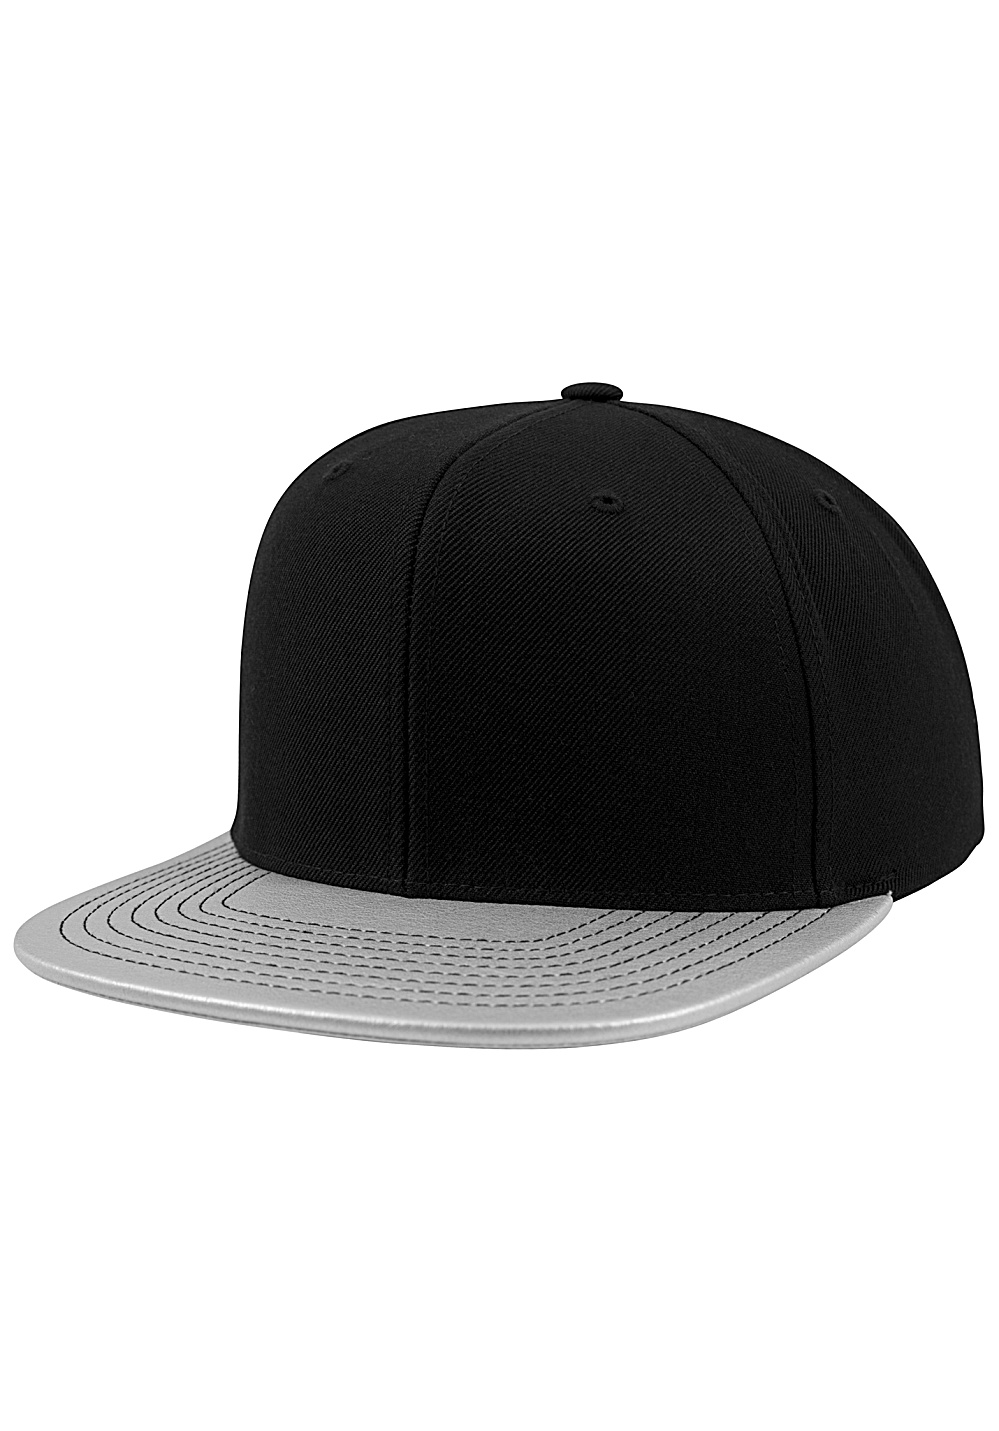 b7eaa178d2f ... FLEXFIT Metallic Visor - Snapback Cap - Black. Back to Overview. 1  2   3  4. Previous